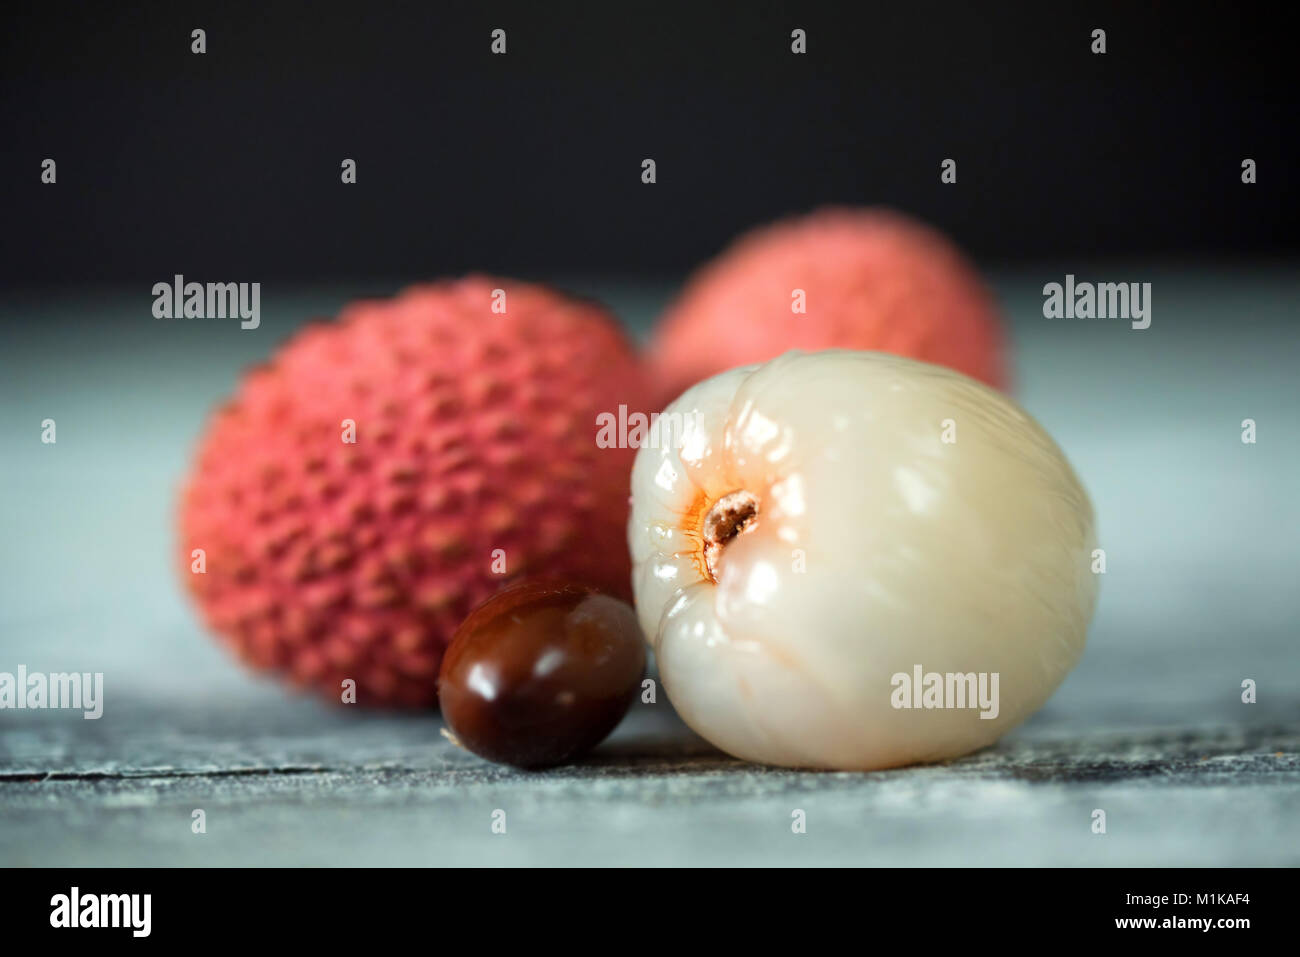 Three lychee fruits and seed on wooden background - Stock Image